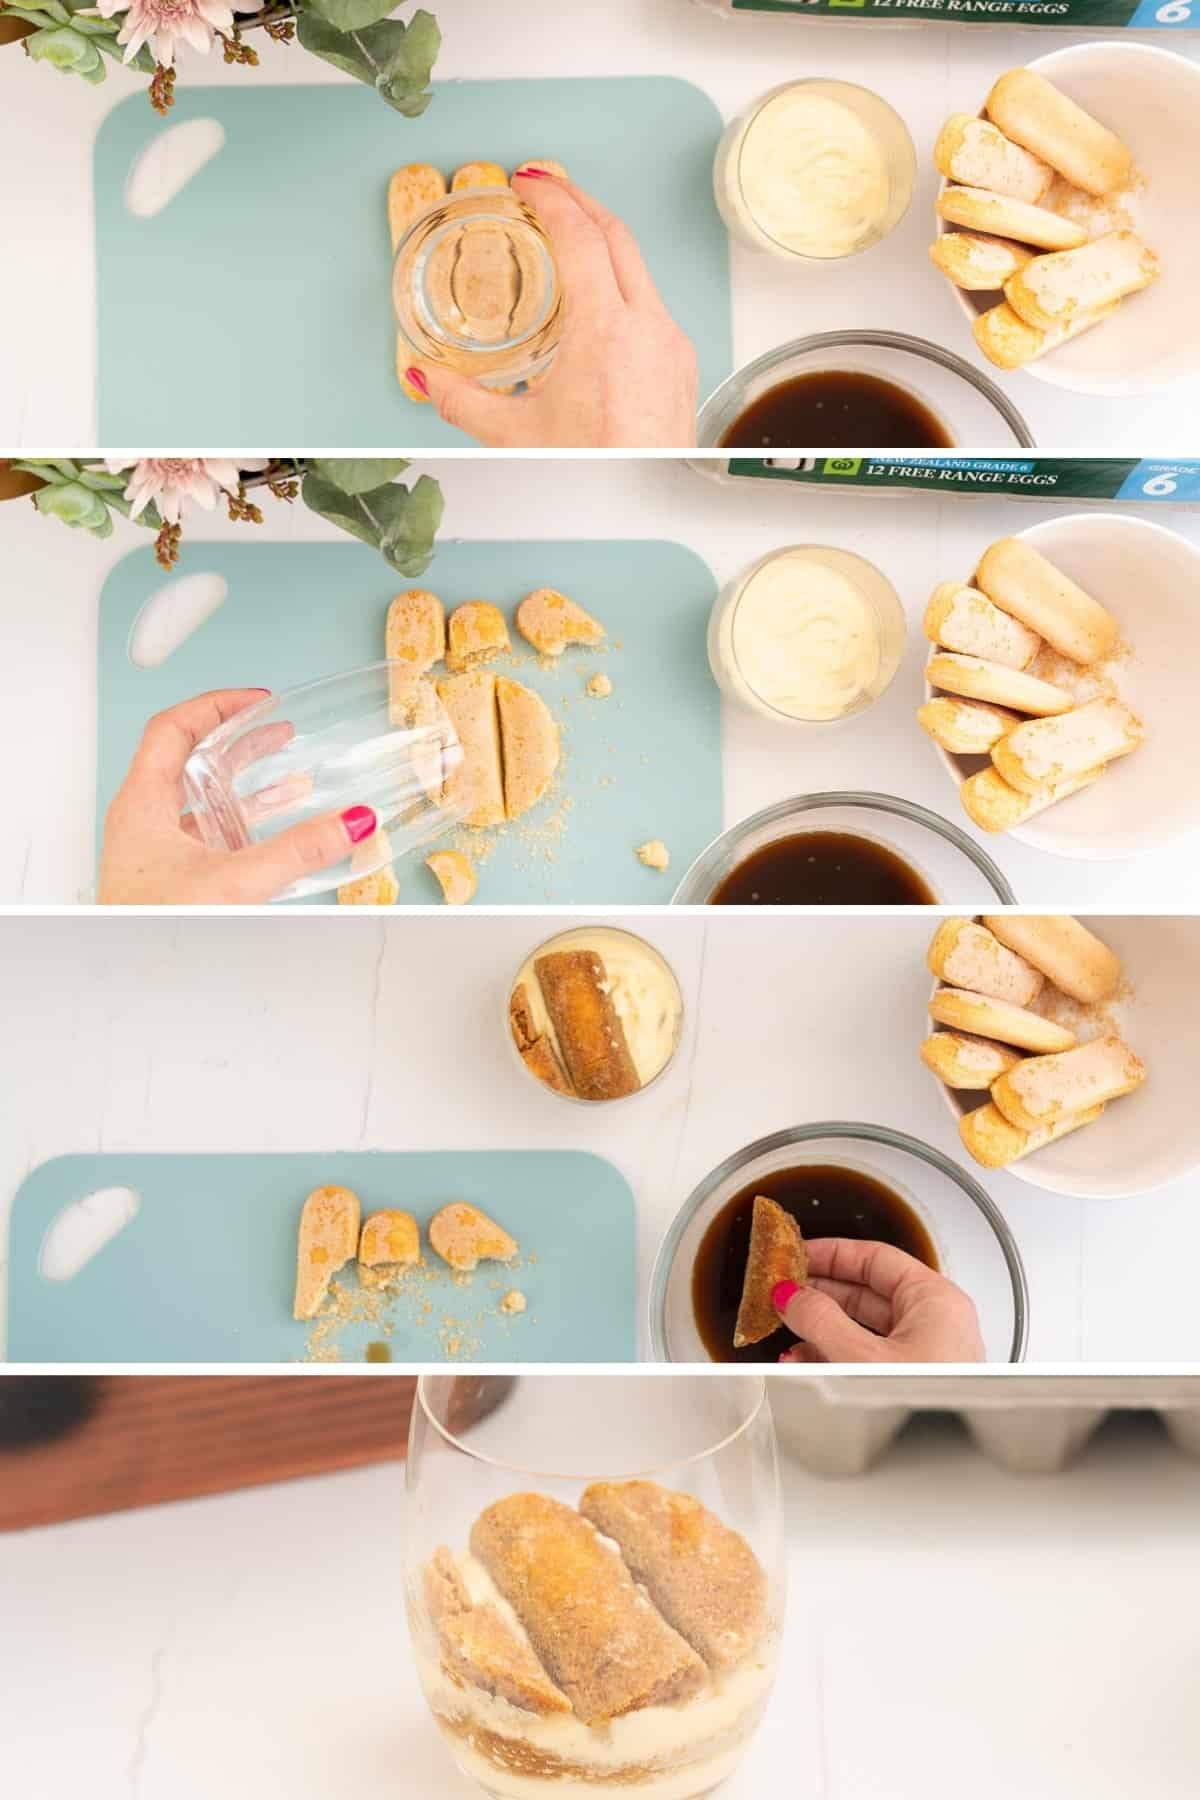 Four photo collage showing the process of cutting savoiardi biscuits to size using a glass.